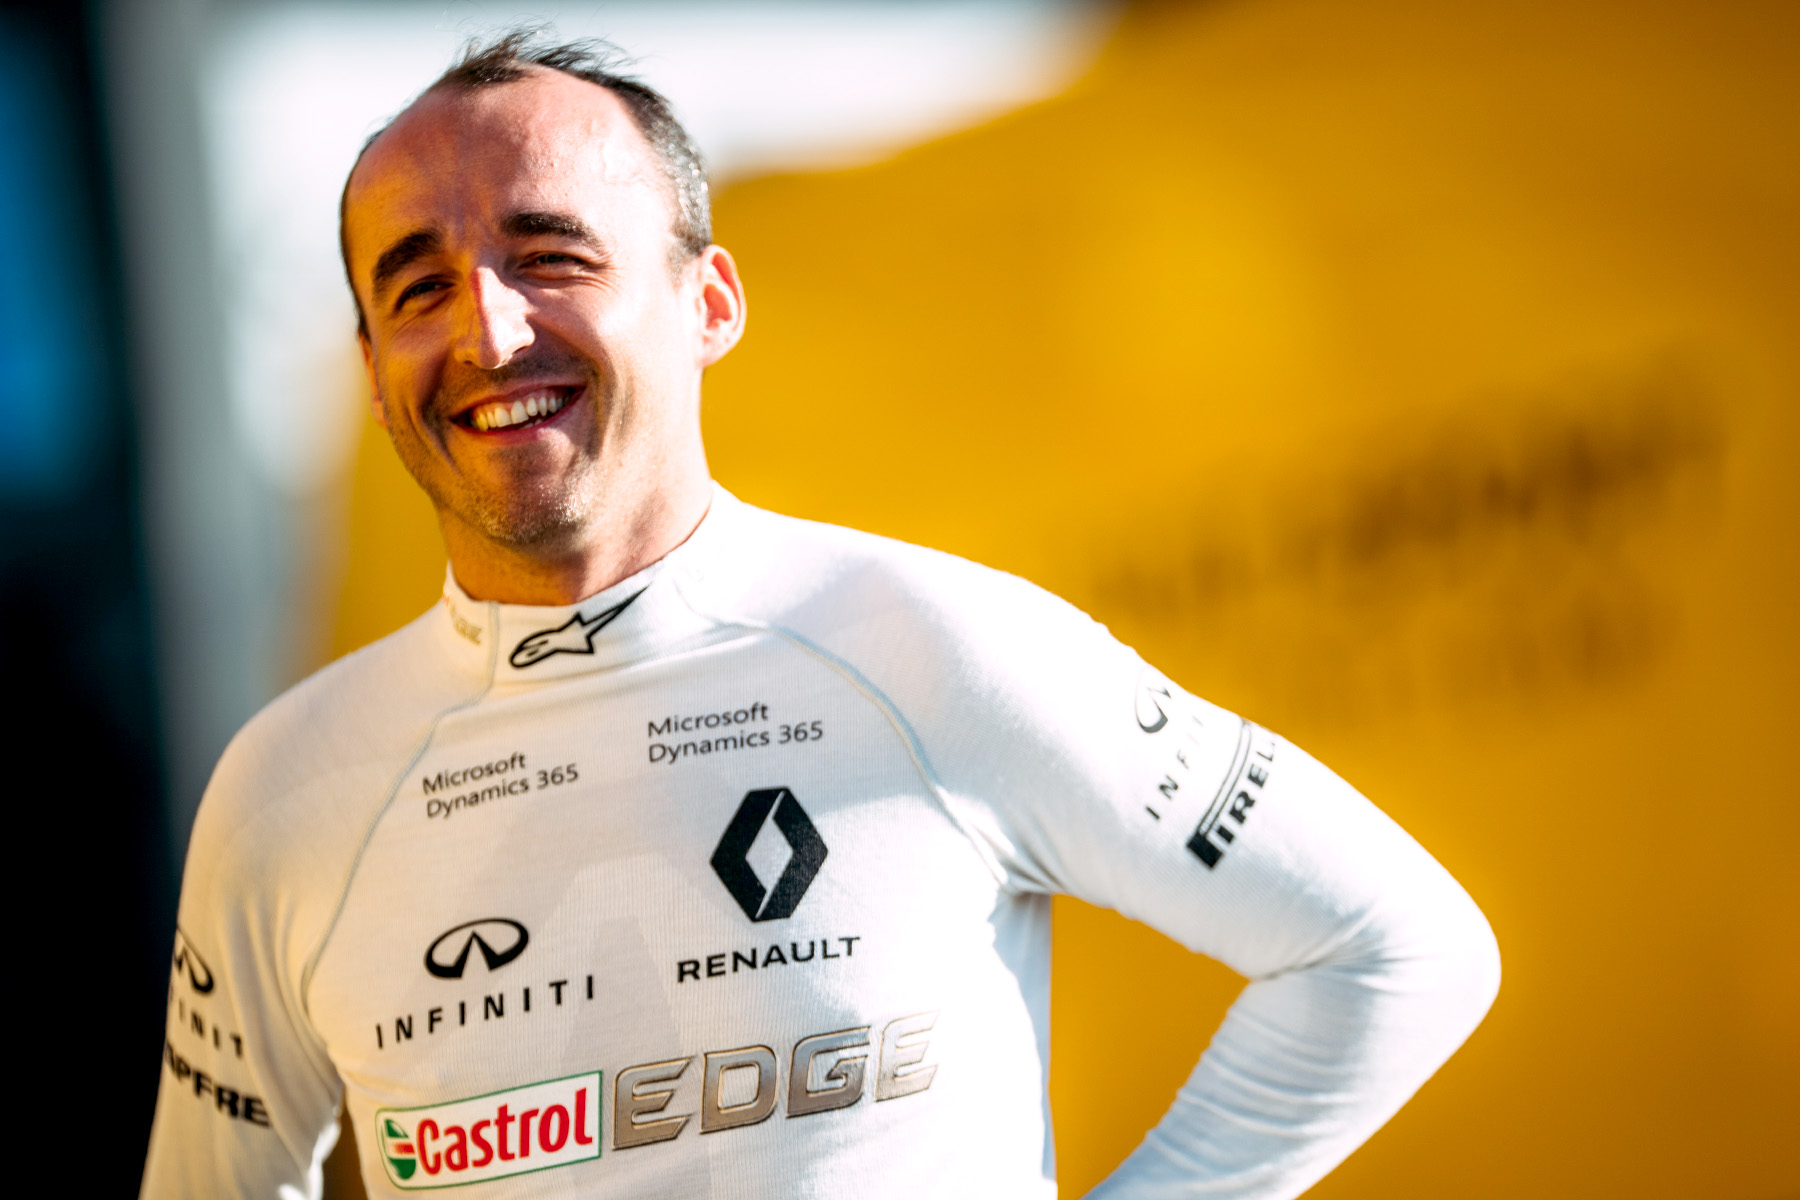 Robert Kubica at his private Renault test in Valencia